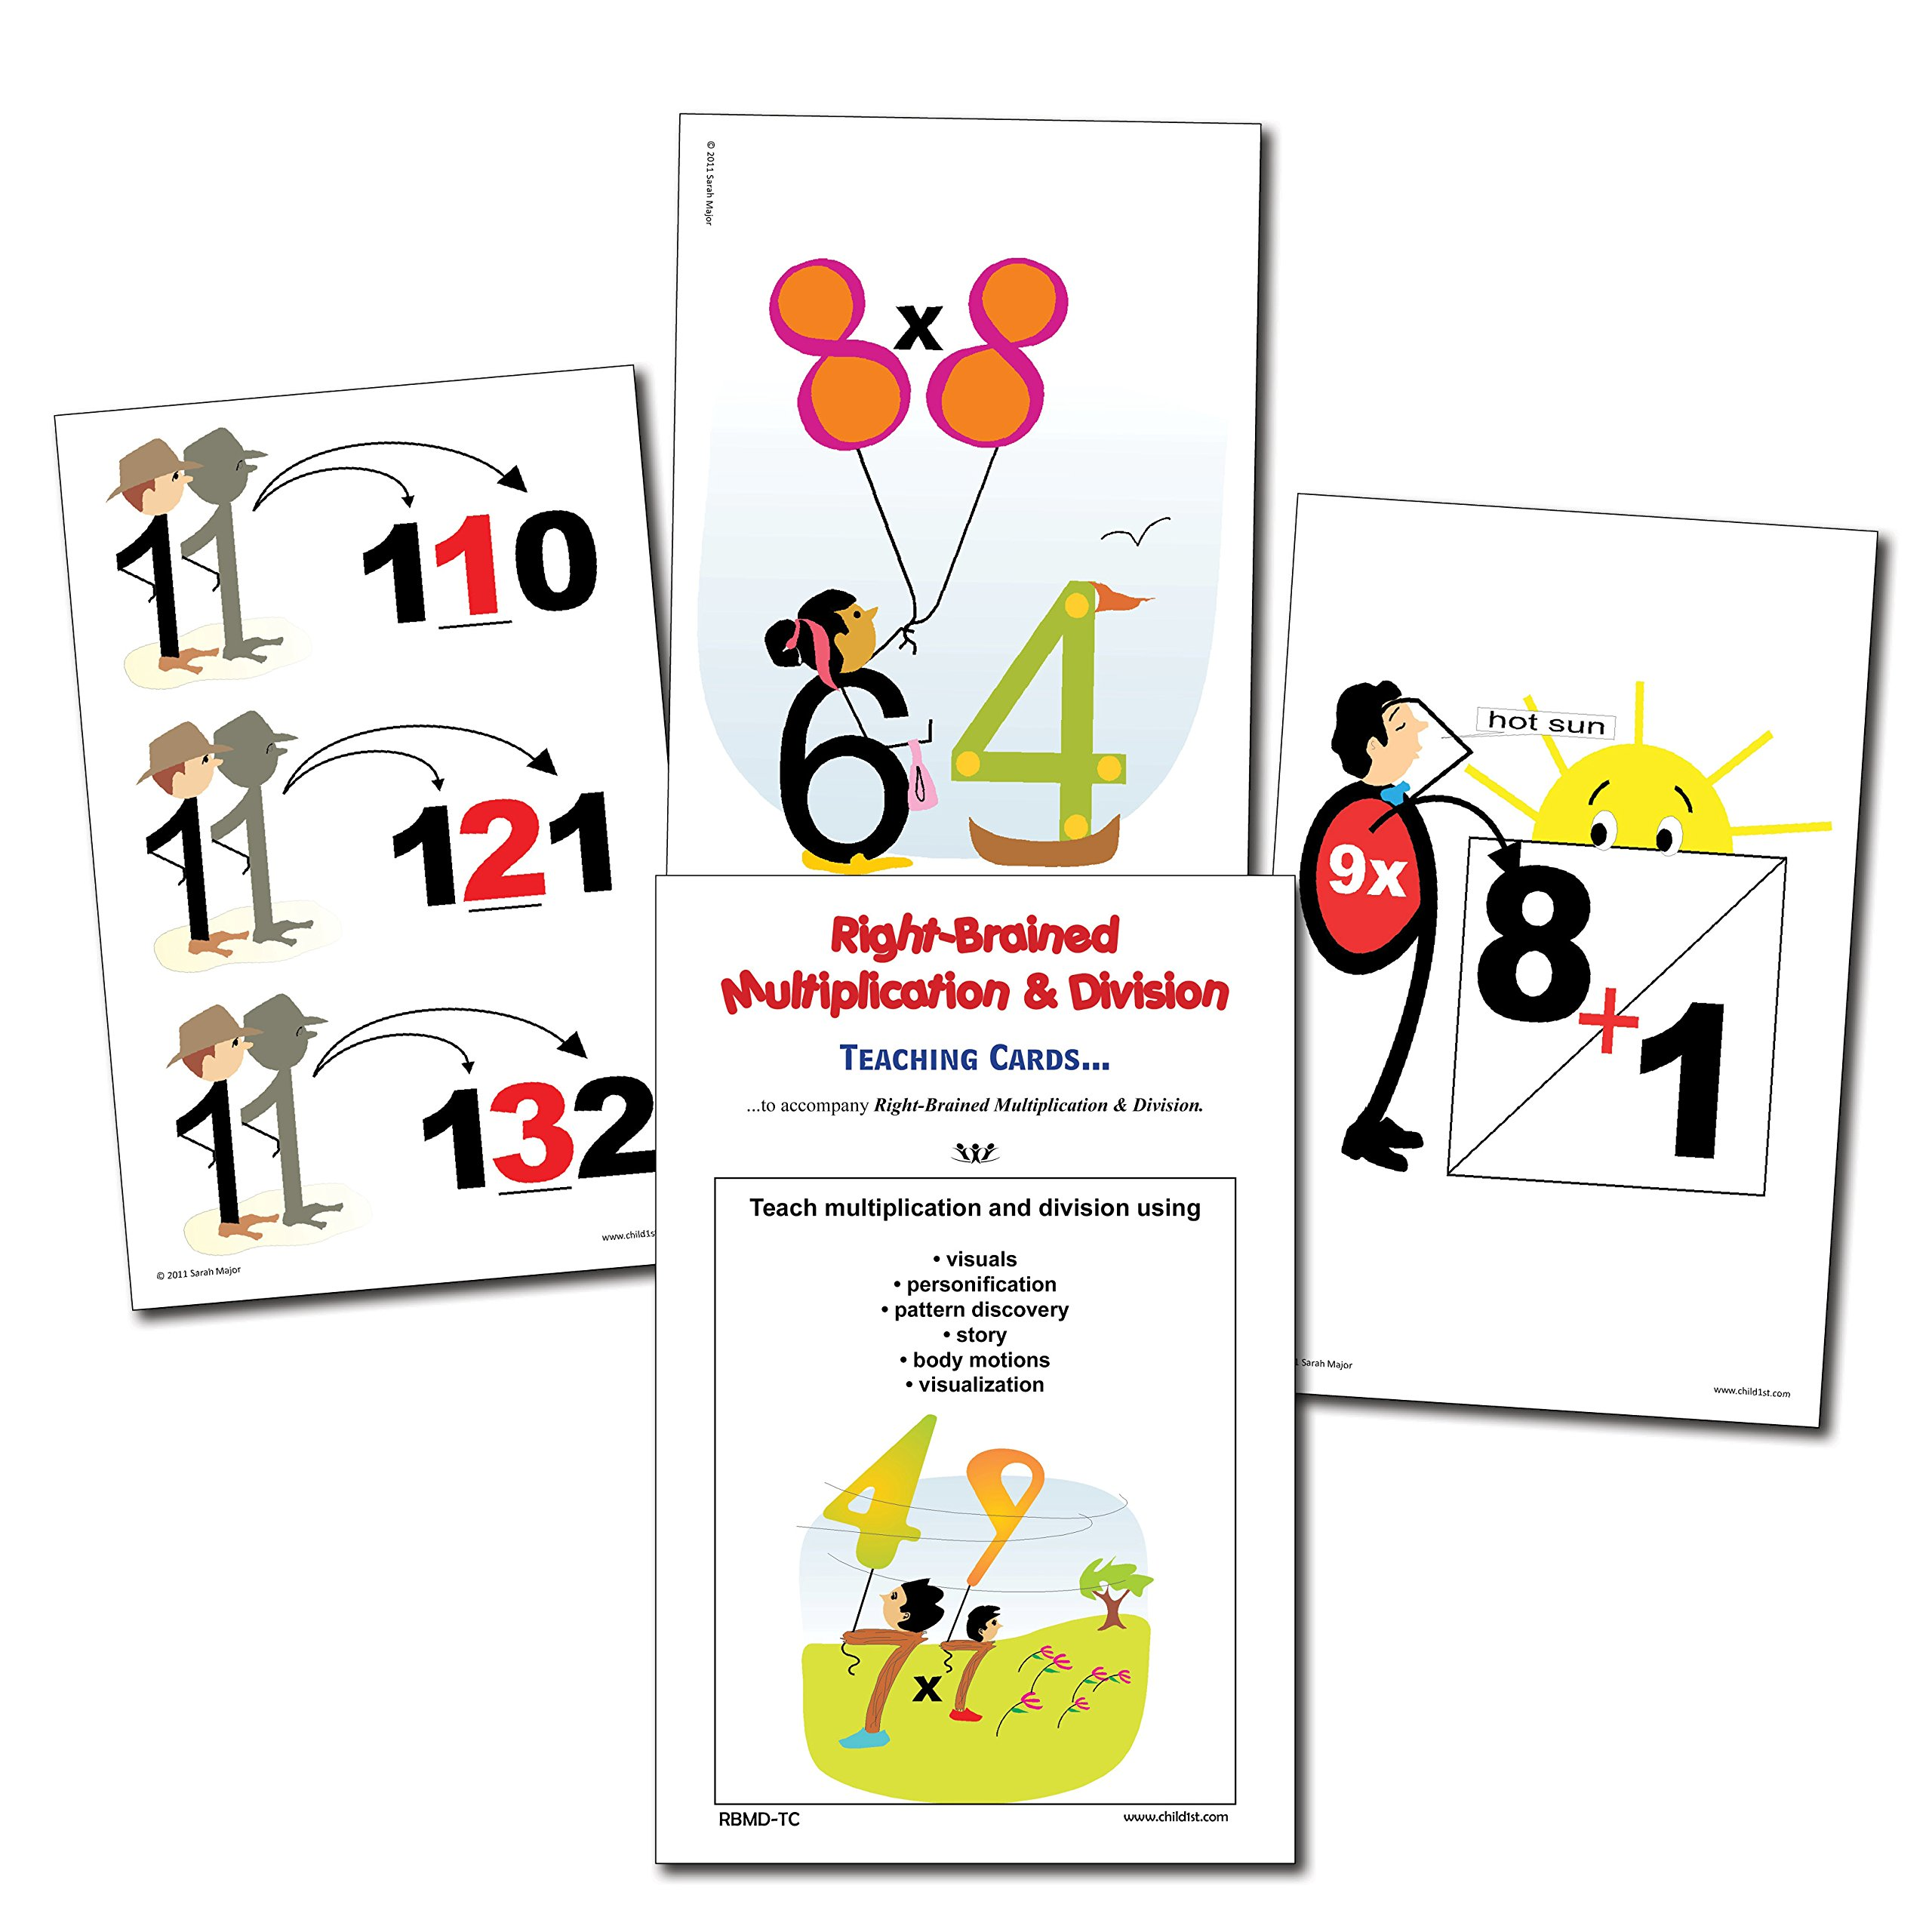 Right-Brained Multiplication & Division Teaching Cards by Child1st Publications, LLC